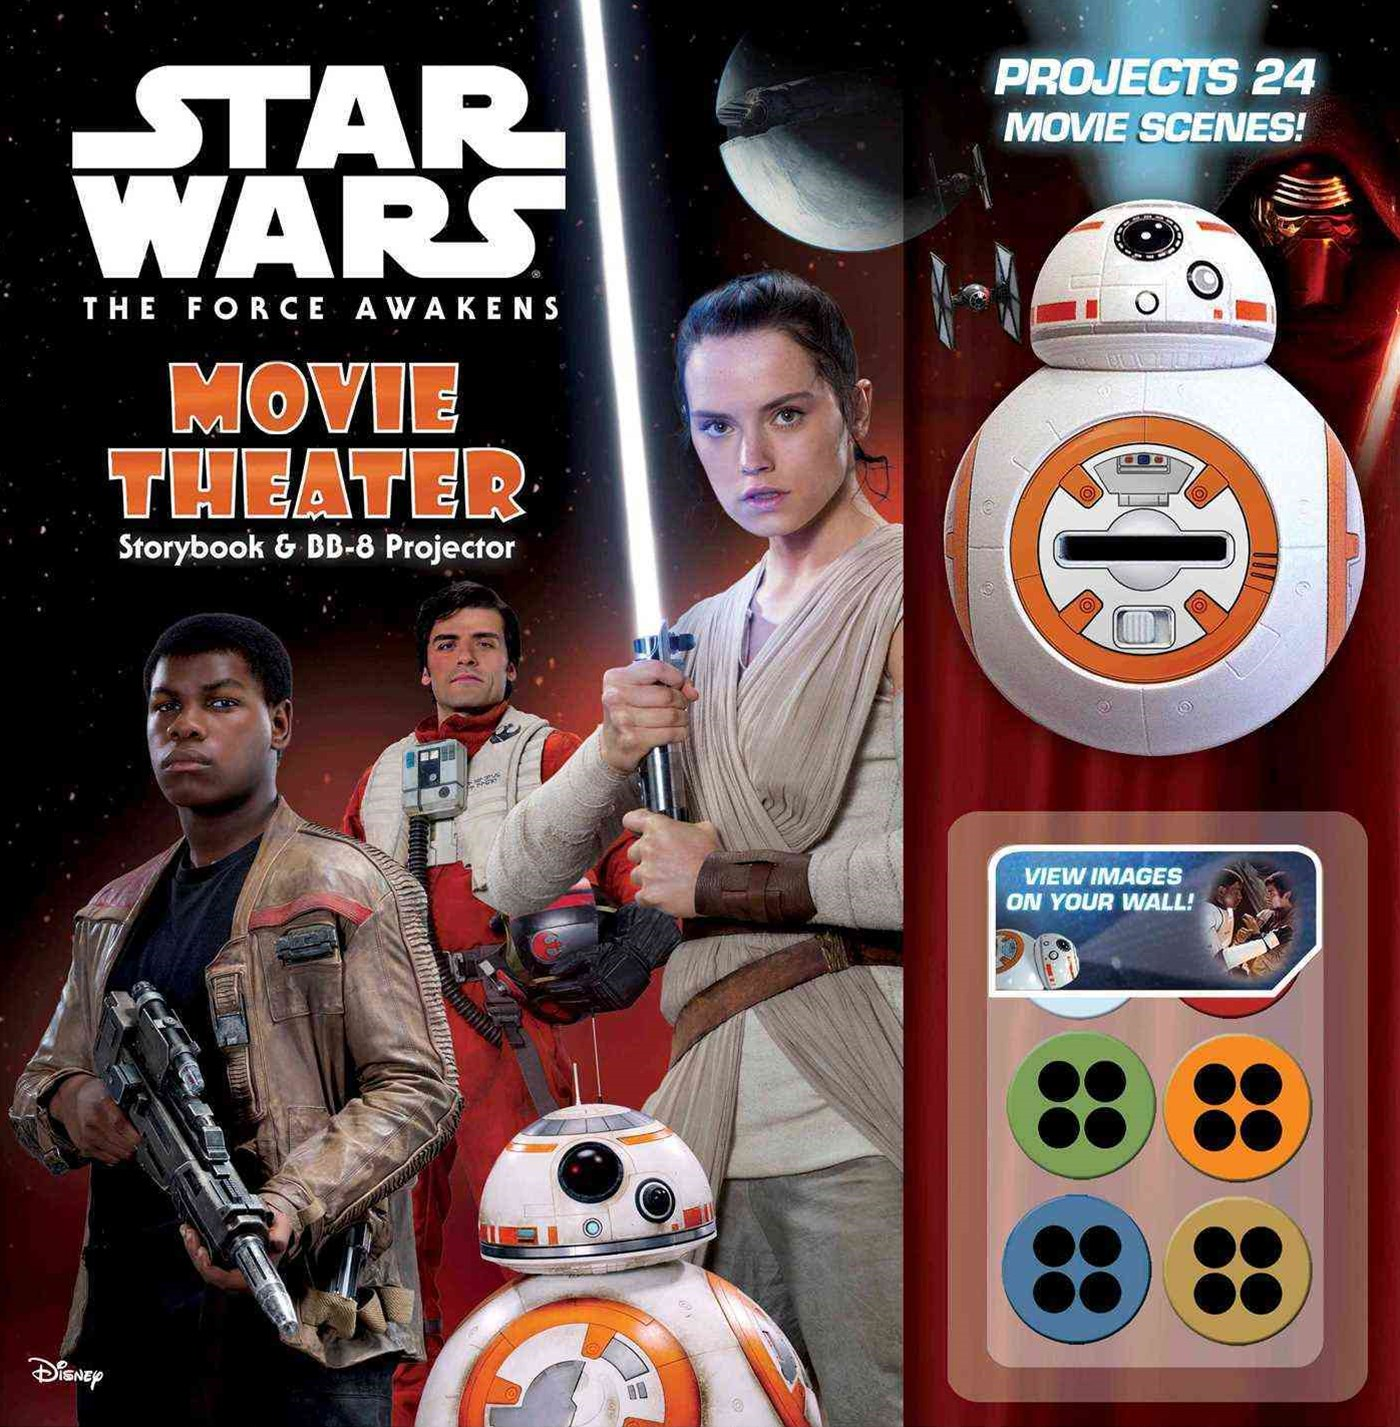 Star Wars: the Force Awakens: Movie Theater Storybook and BB-8 Projector